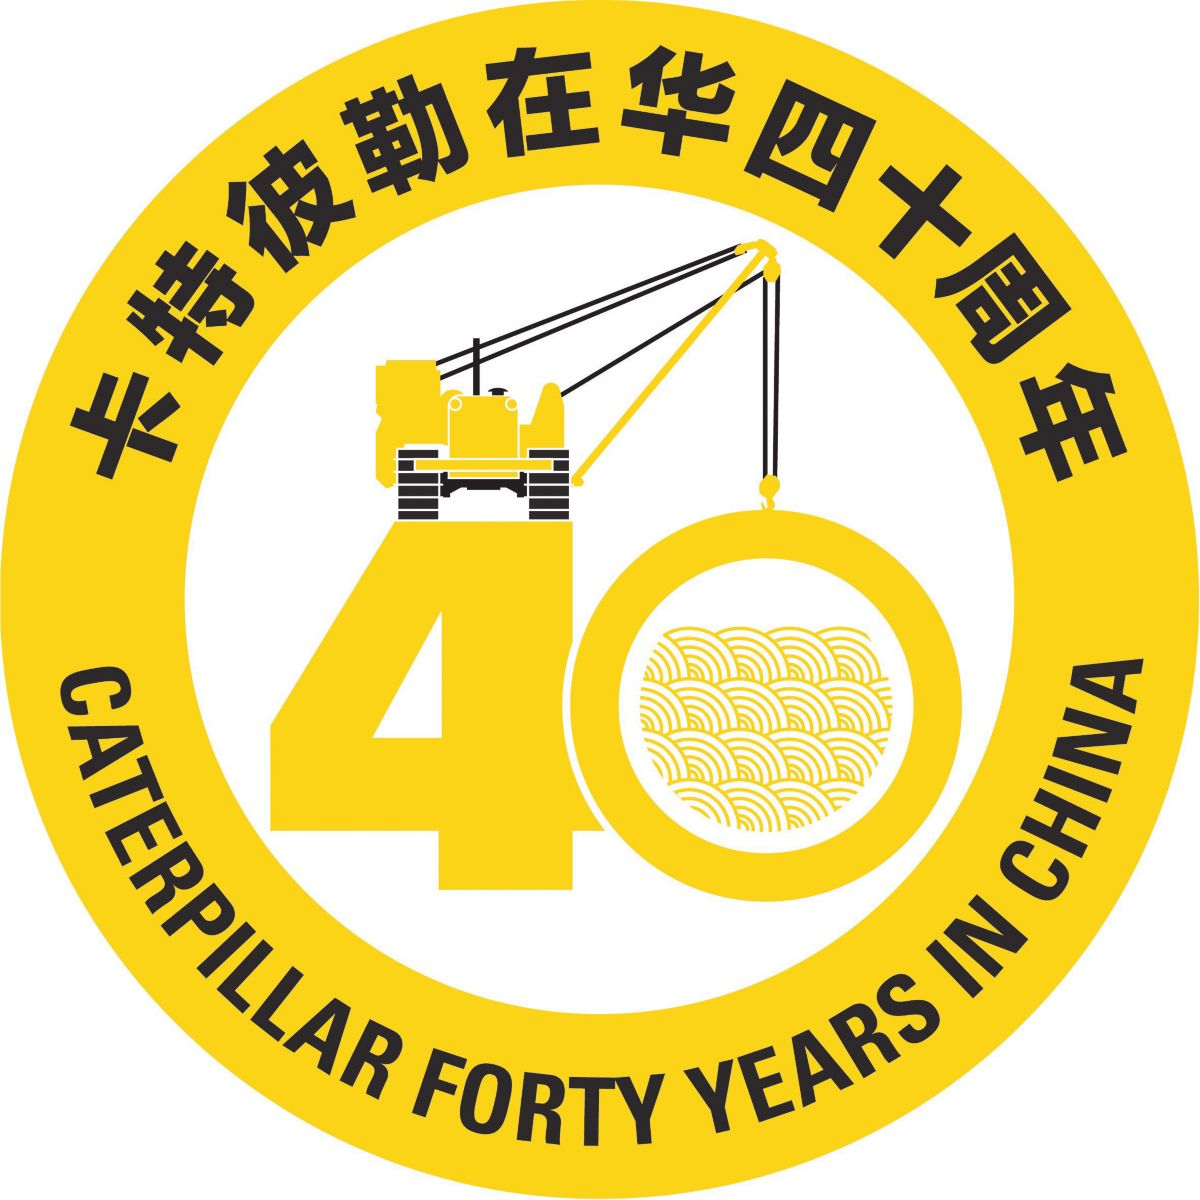 In 2015, Caterpillar celebrated its 40th anniversary in China.